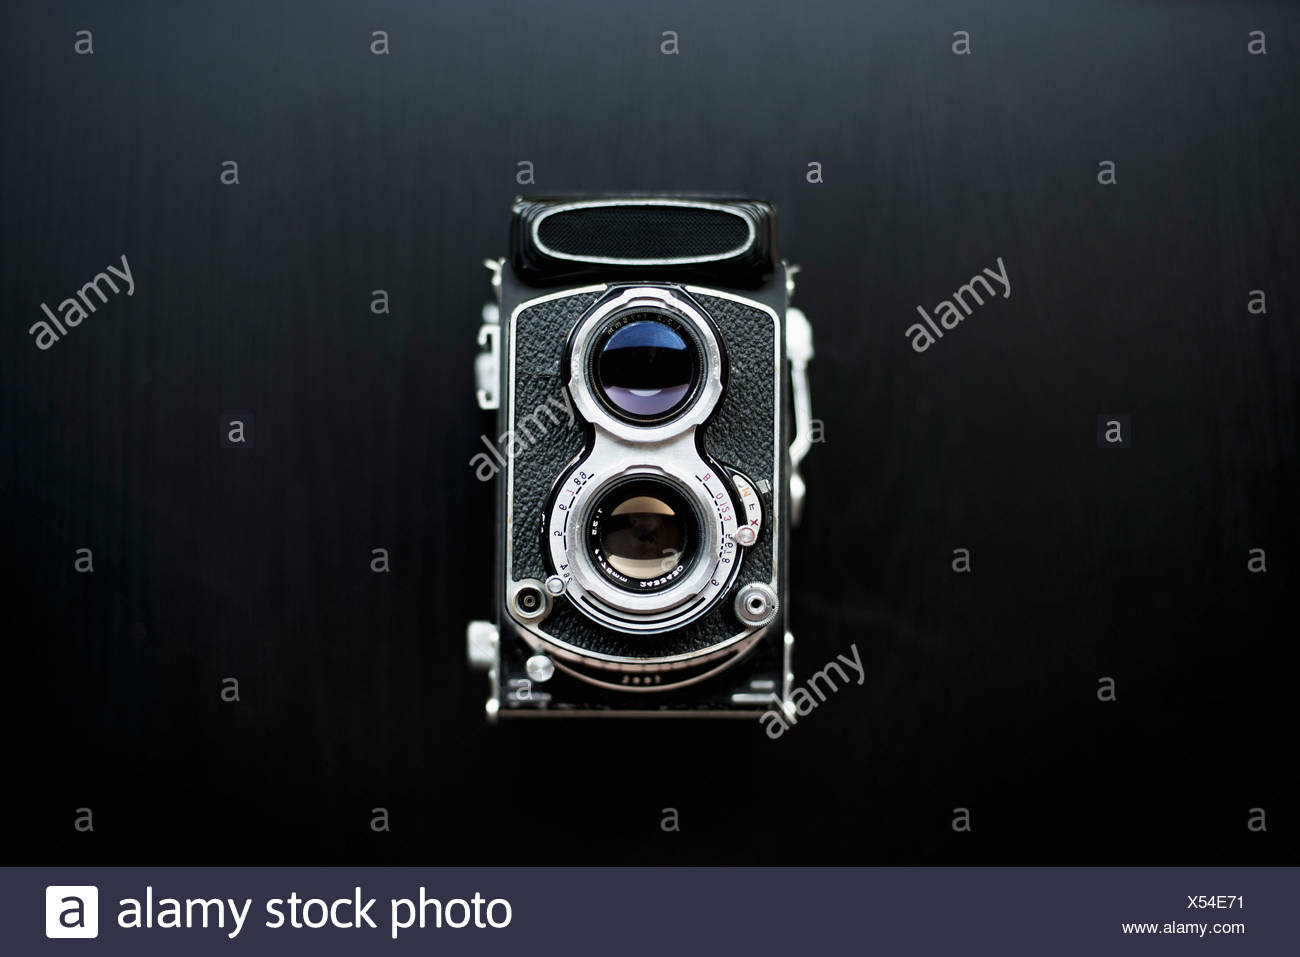 Retro styled camera over black background - Stock Image